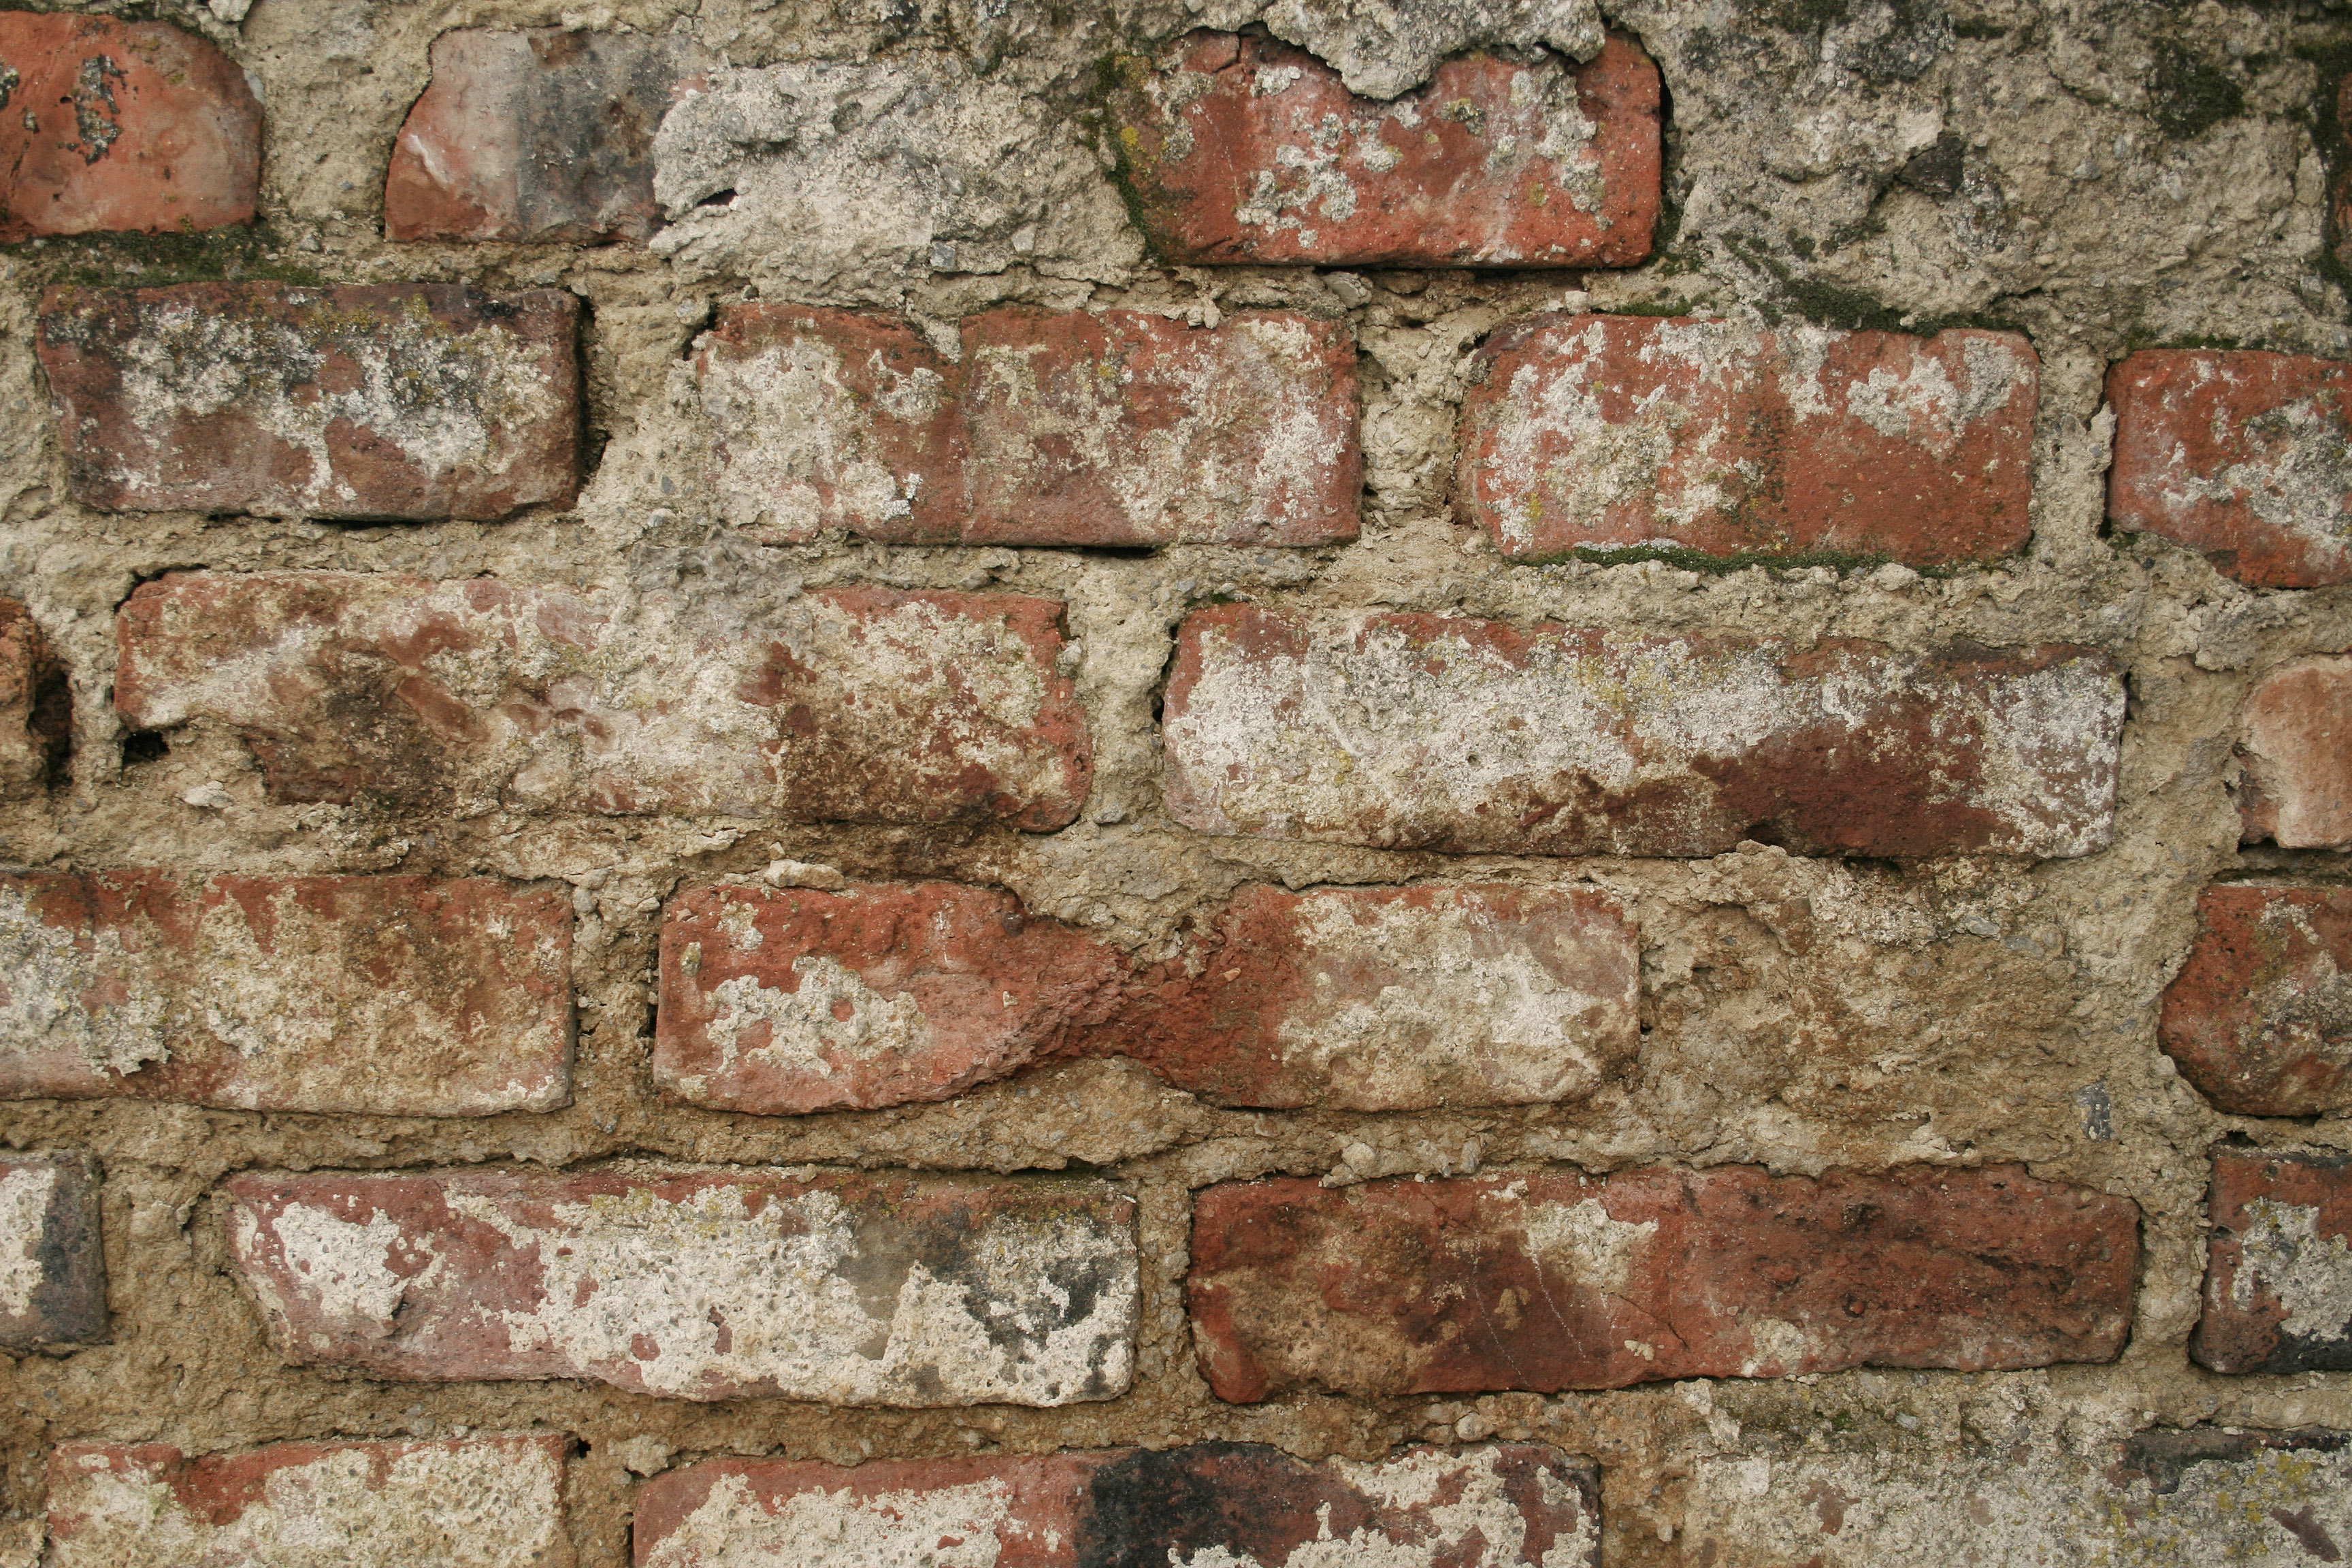 Free Stock Wall Textures Cg Textures Free Download Wall Textures Download Texturepalace Com Premium Premium Stock Textures Wall Texturepalace Com